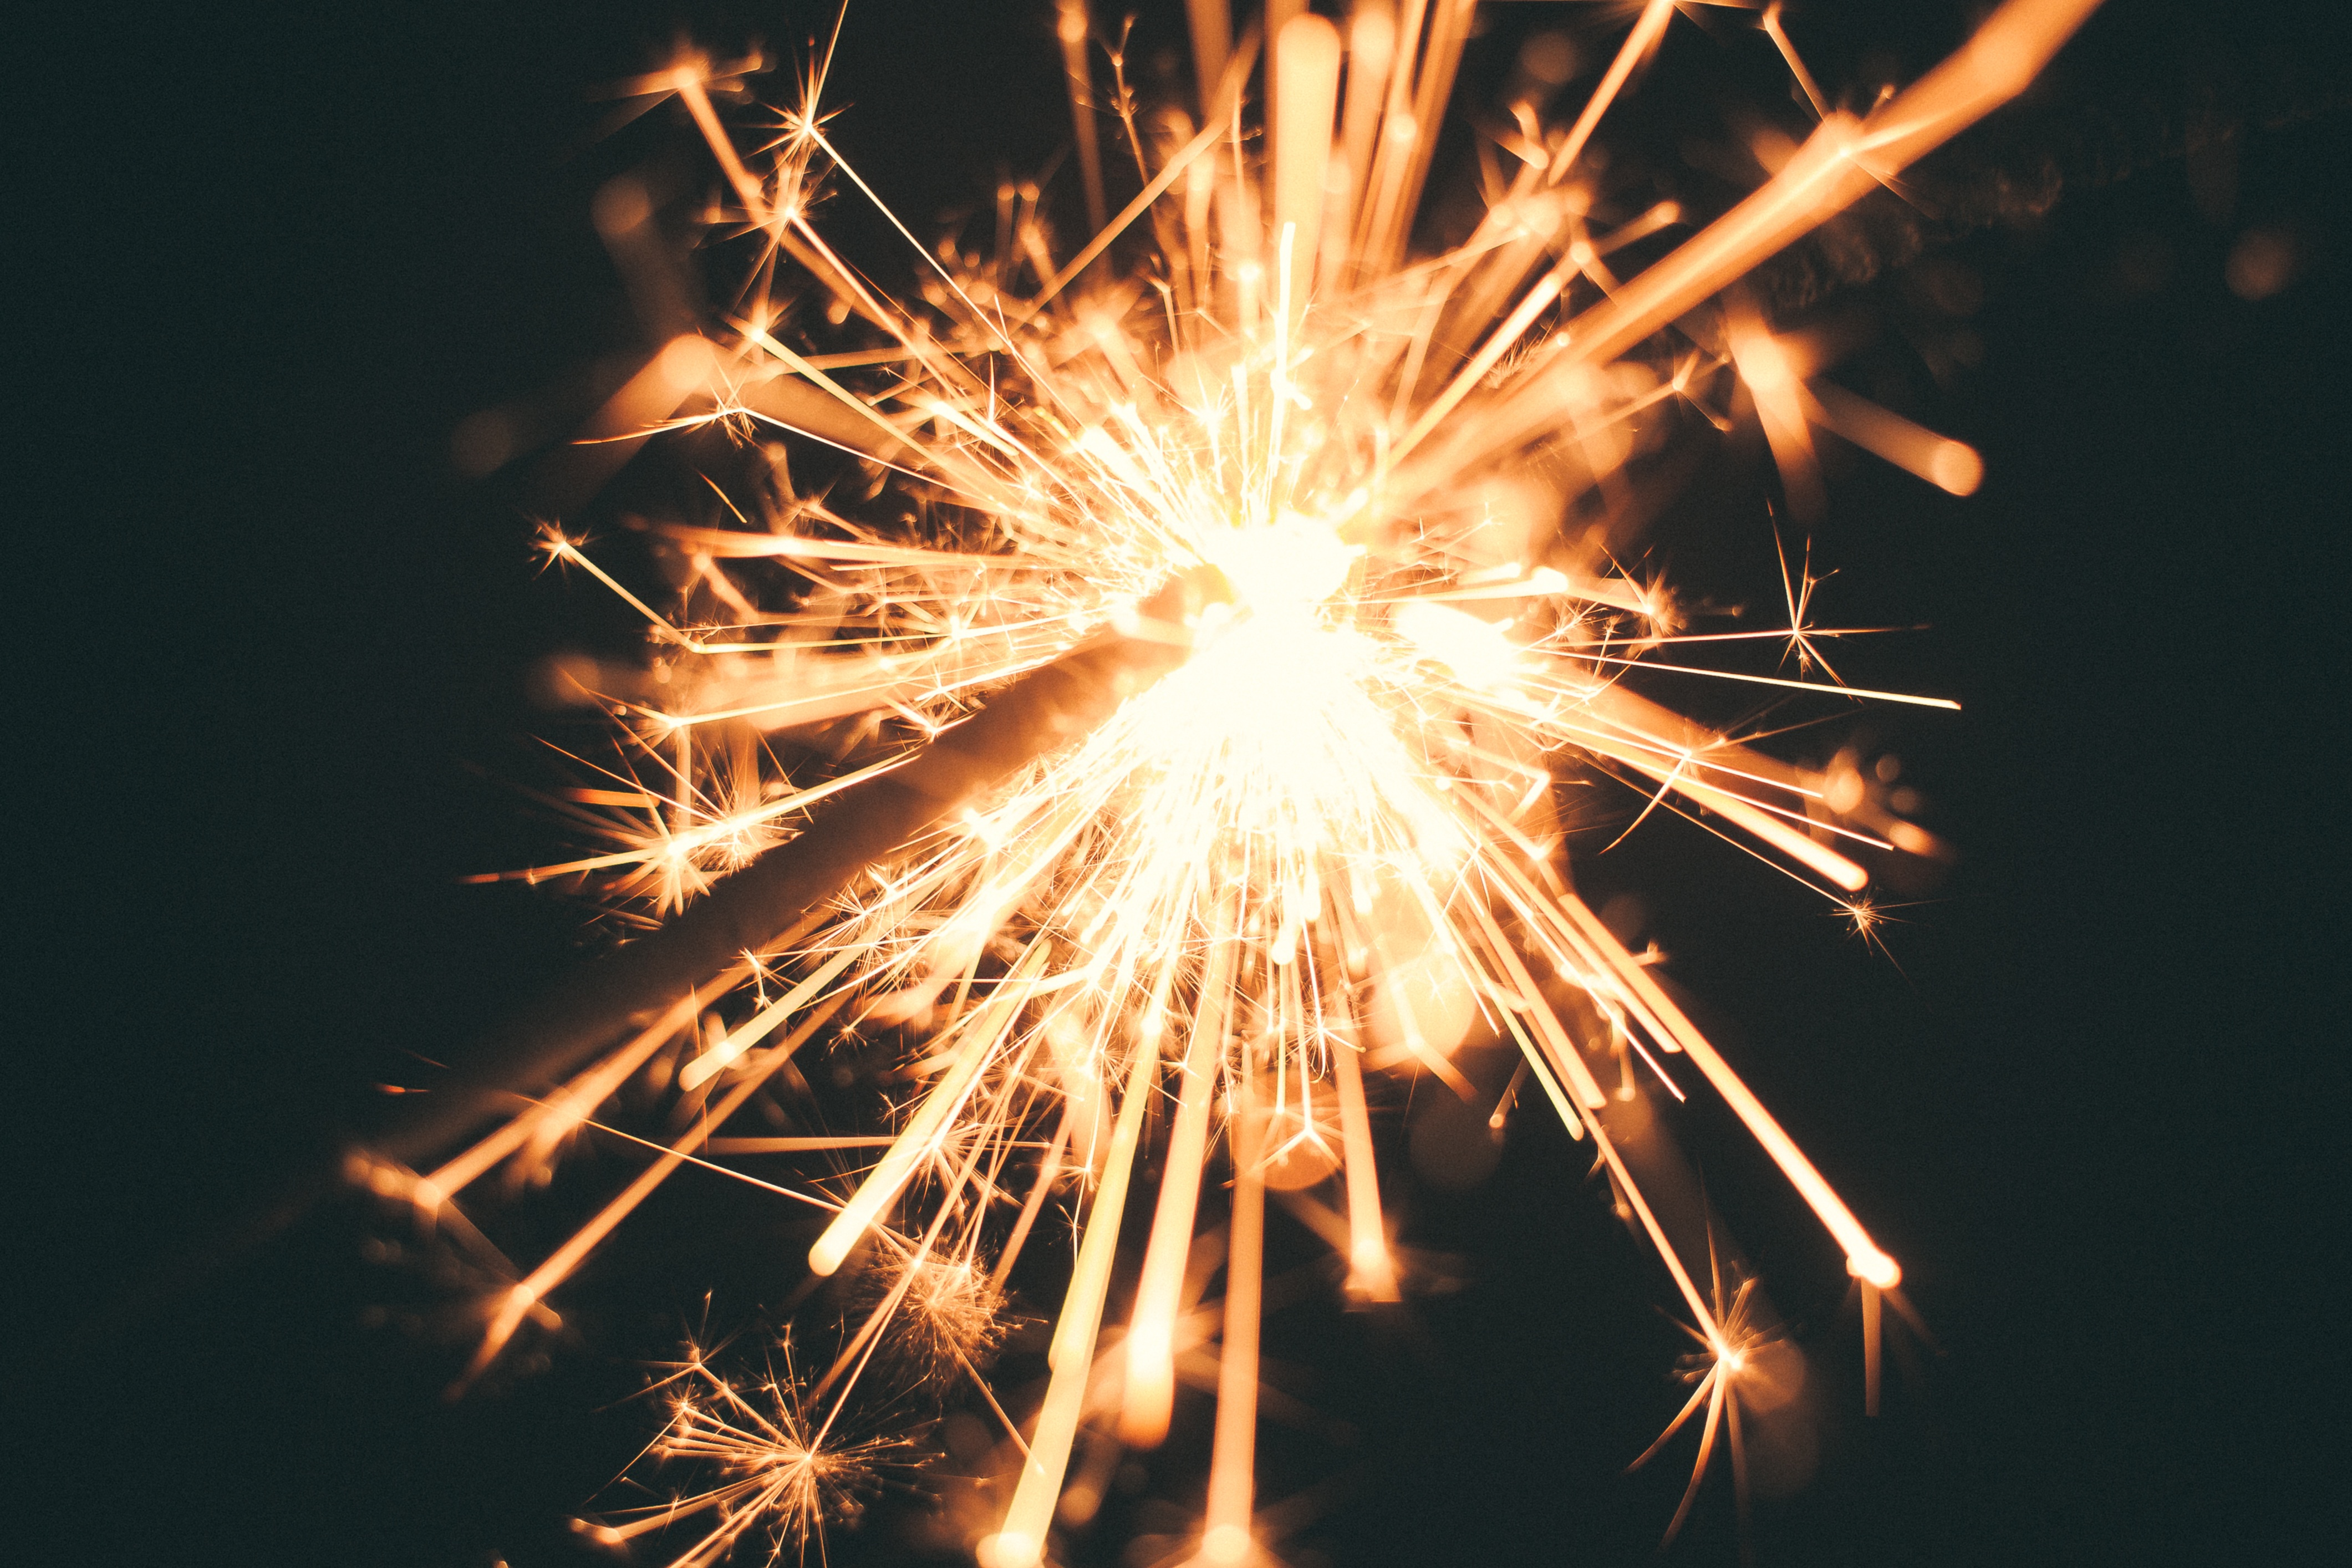 Sparkle, Activity, Fire, Firework, Happy, HQ Photo